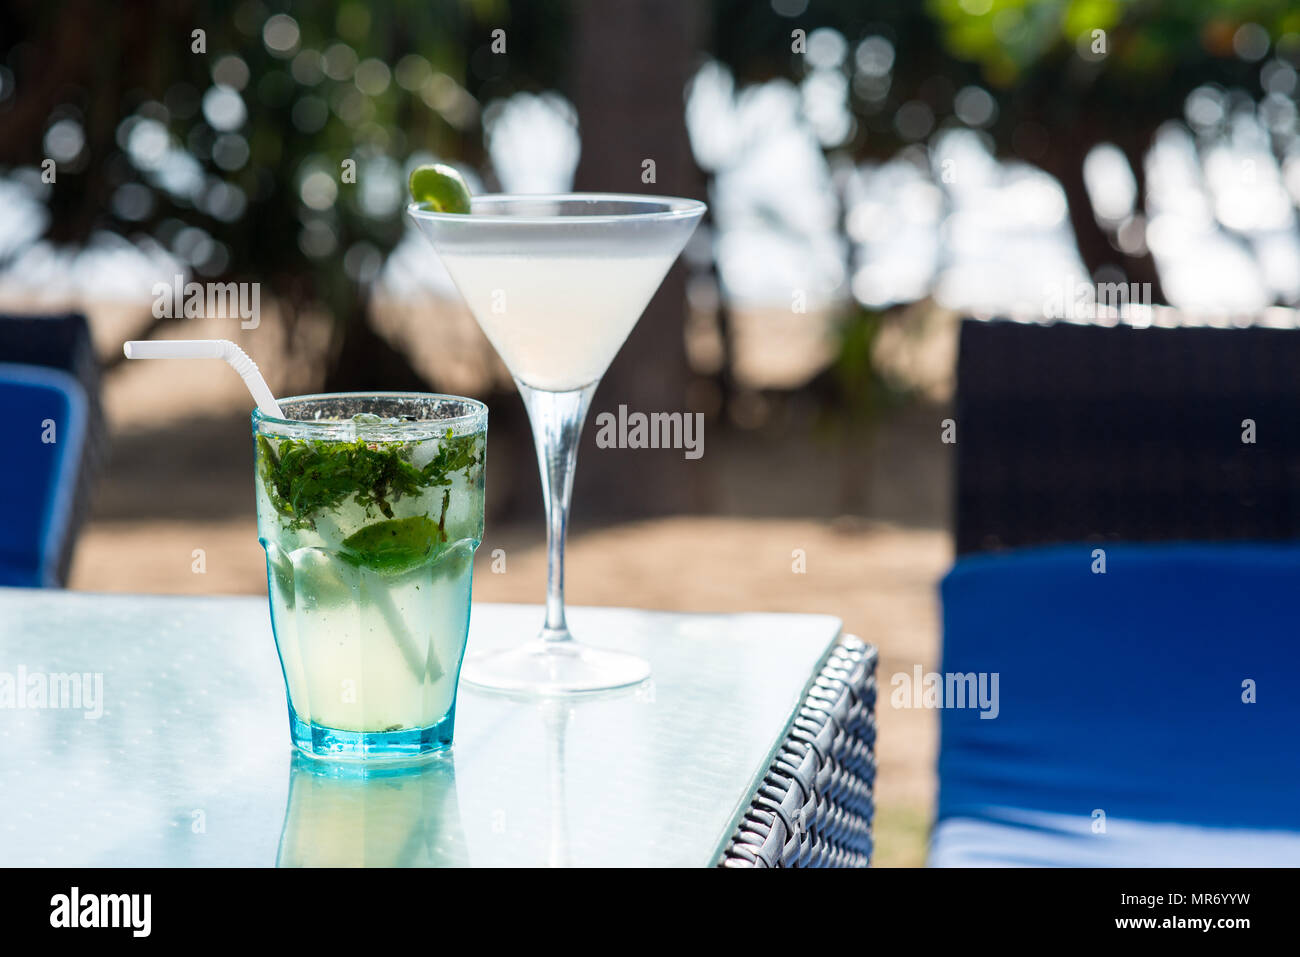 close-up shot of margarita and mojito cocktails standing on table of restaurant - Stock Image